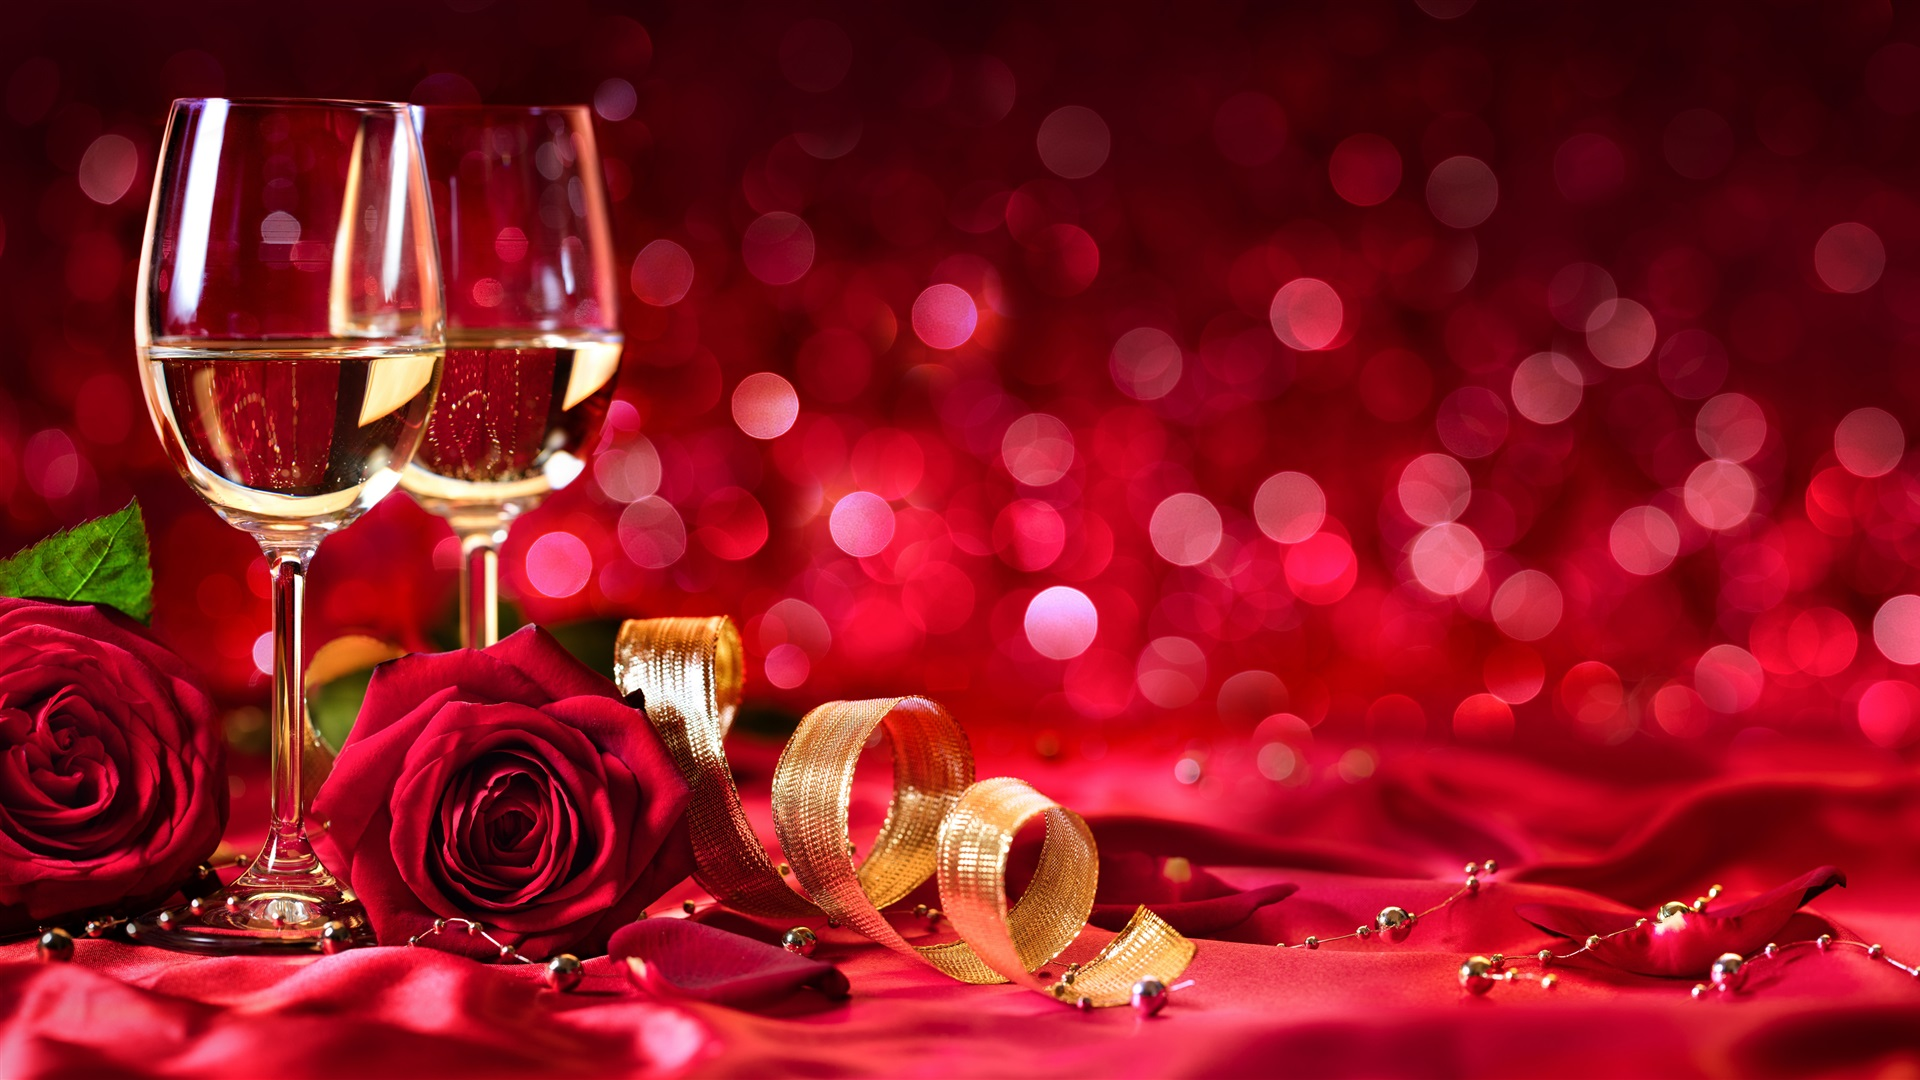 Wallpaper Wine Red Roses Shine Red Background Romantic